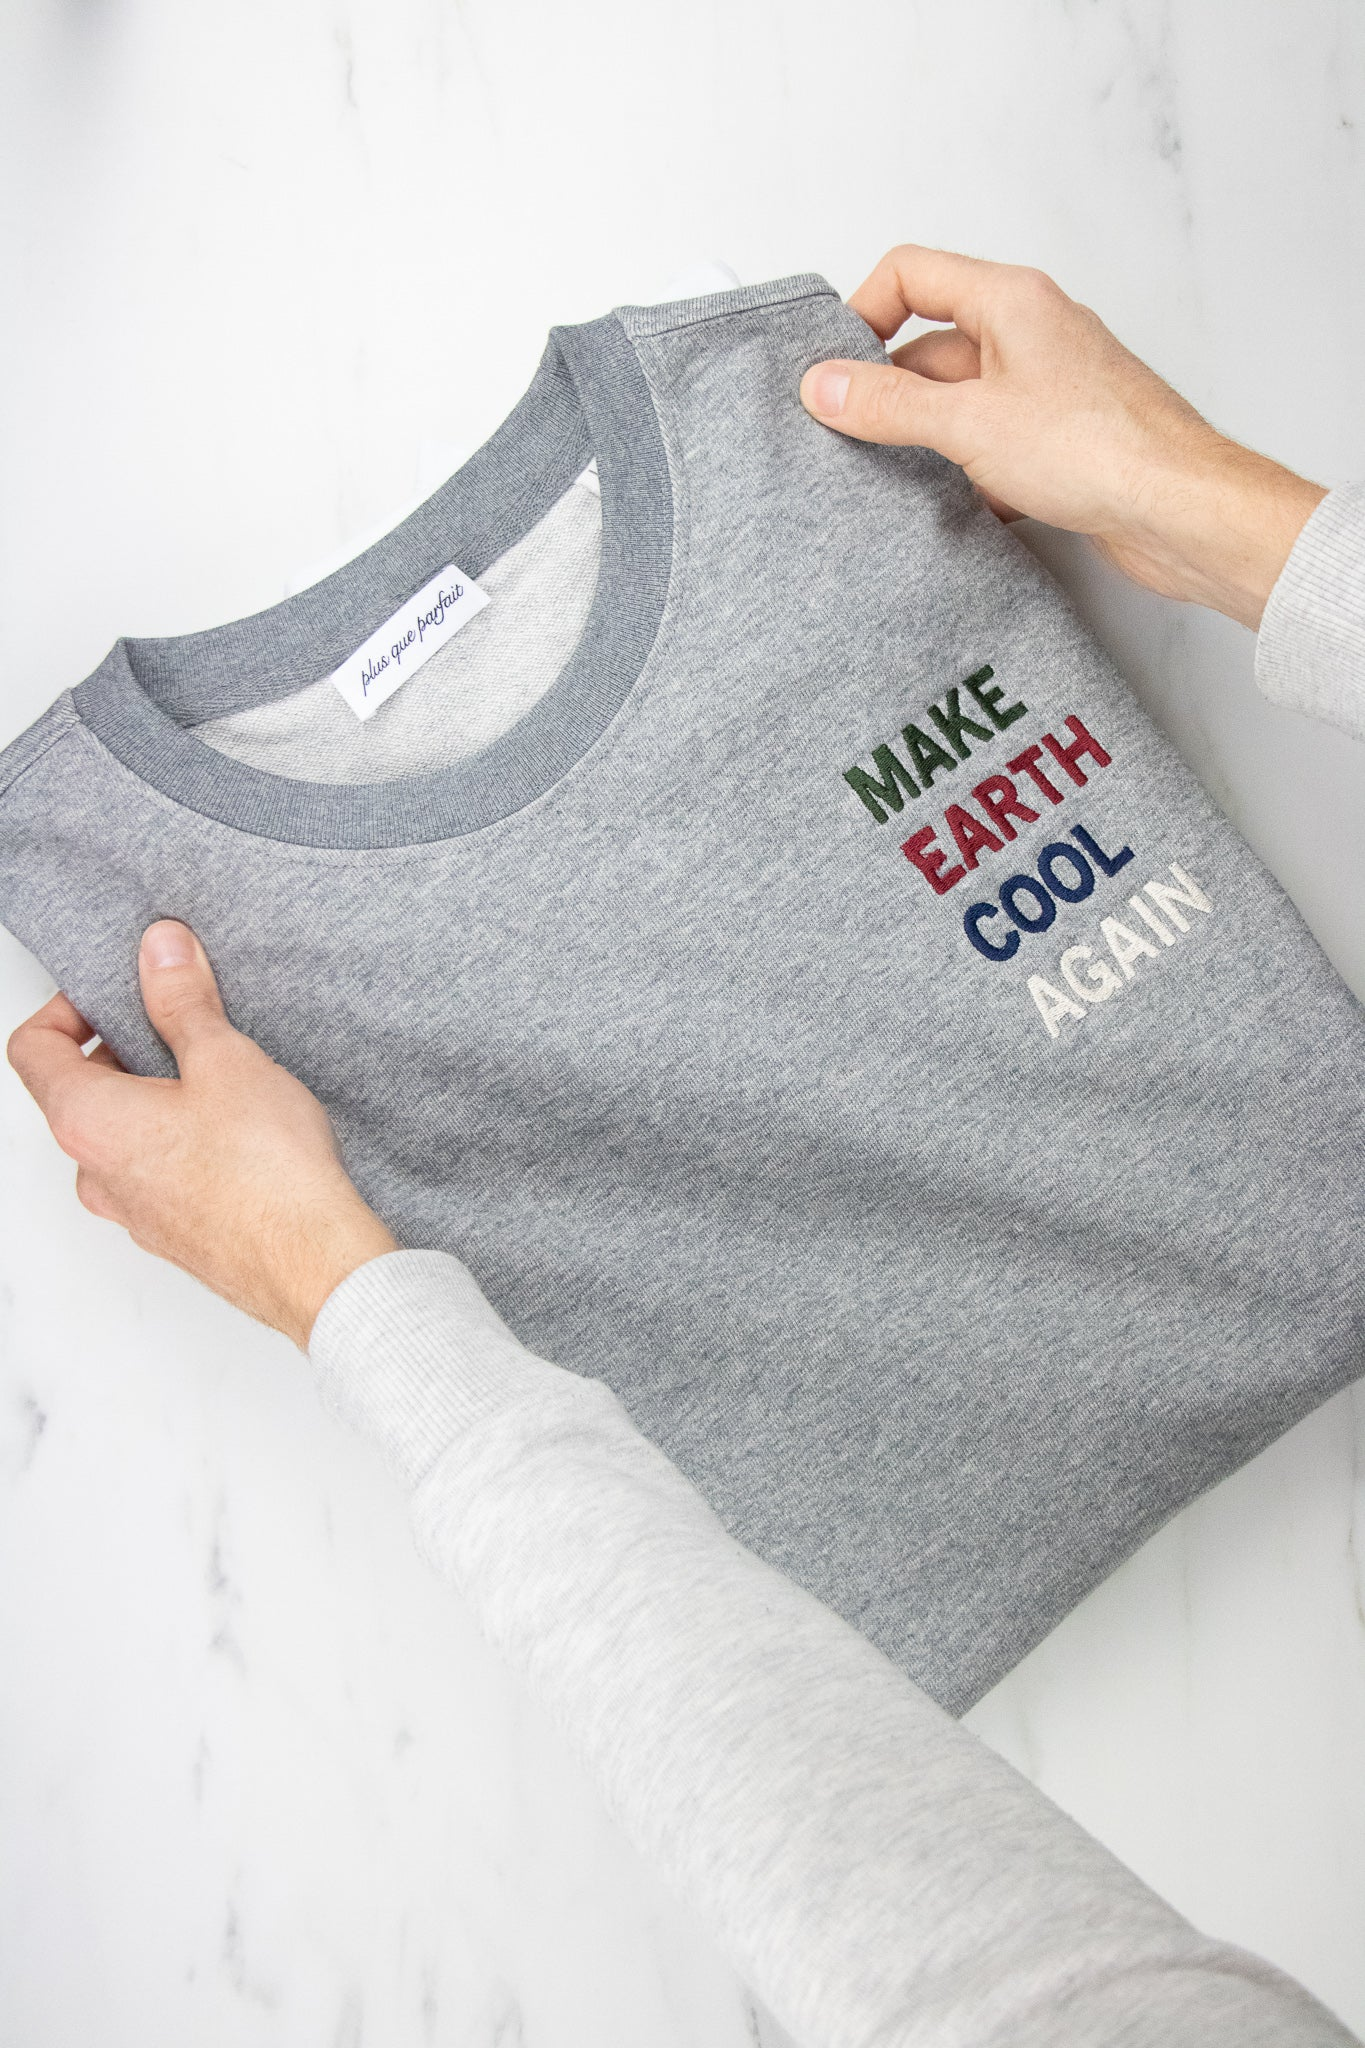 MAKE EARTH COOL AGAIN SWEATSHIRT